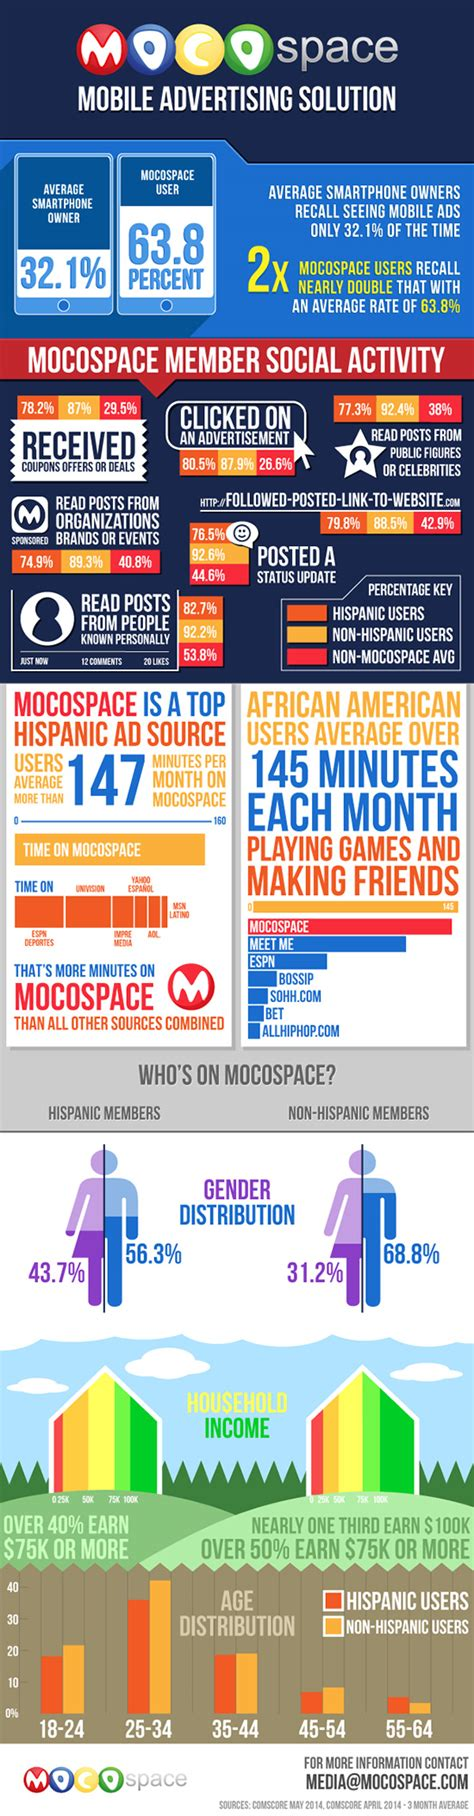 mocospace color code mocospace mobile advertising solution infographic